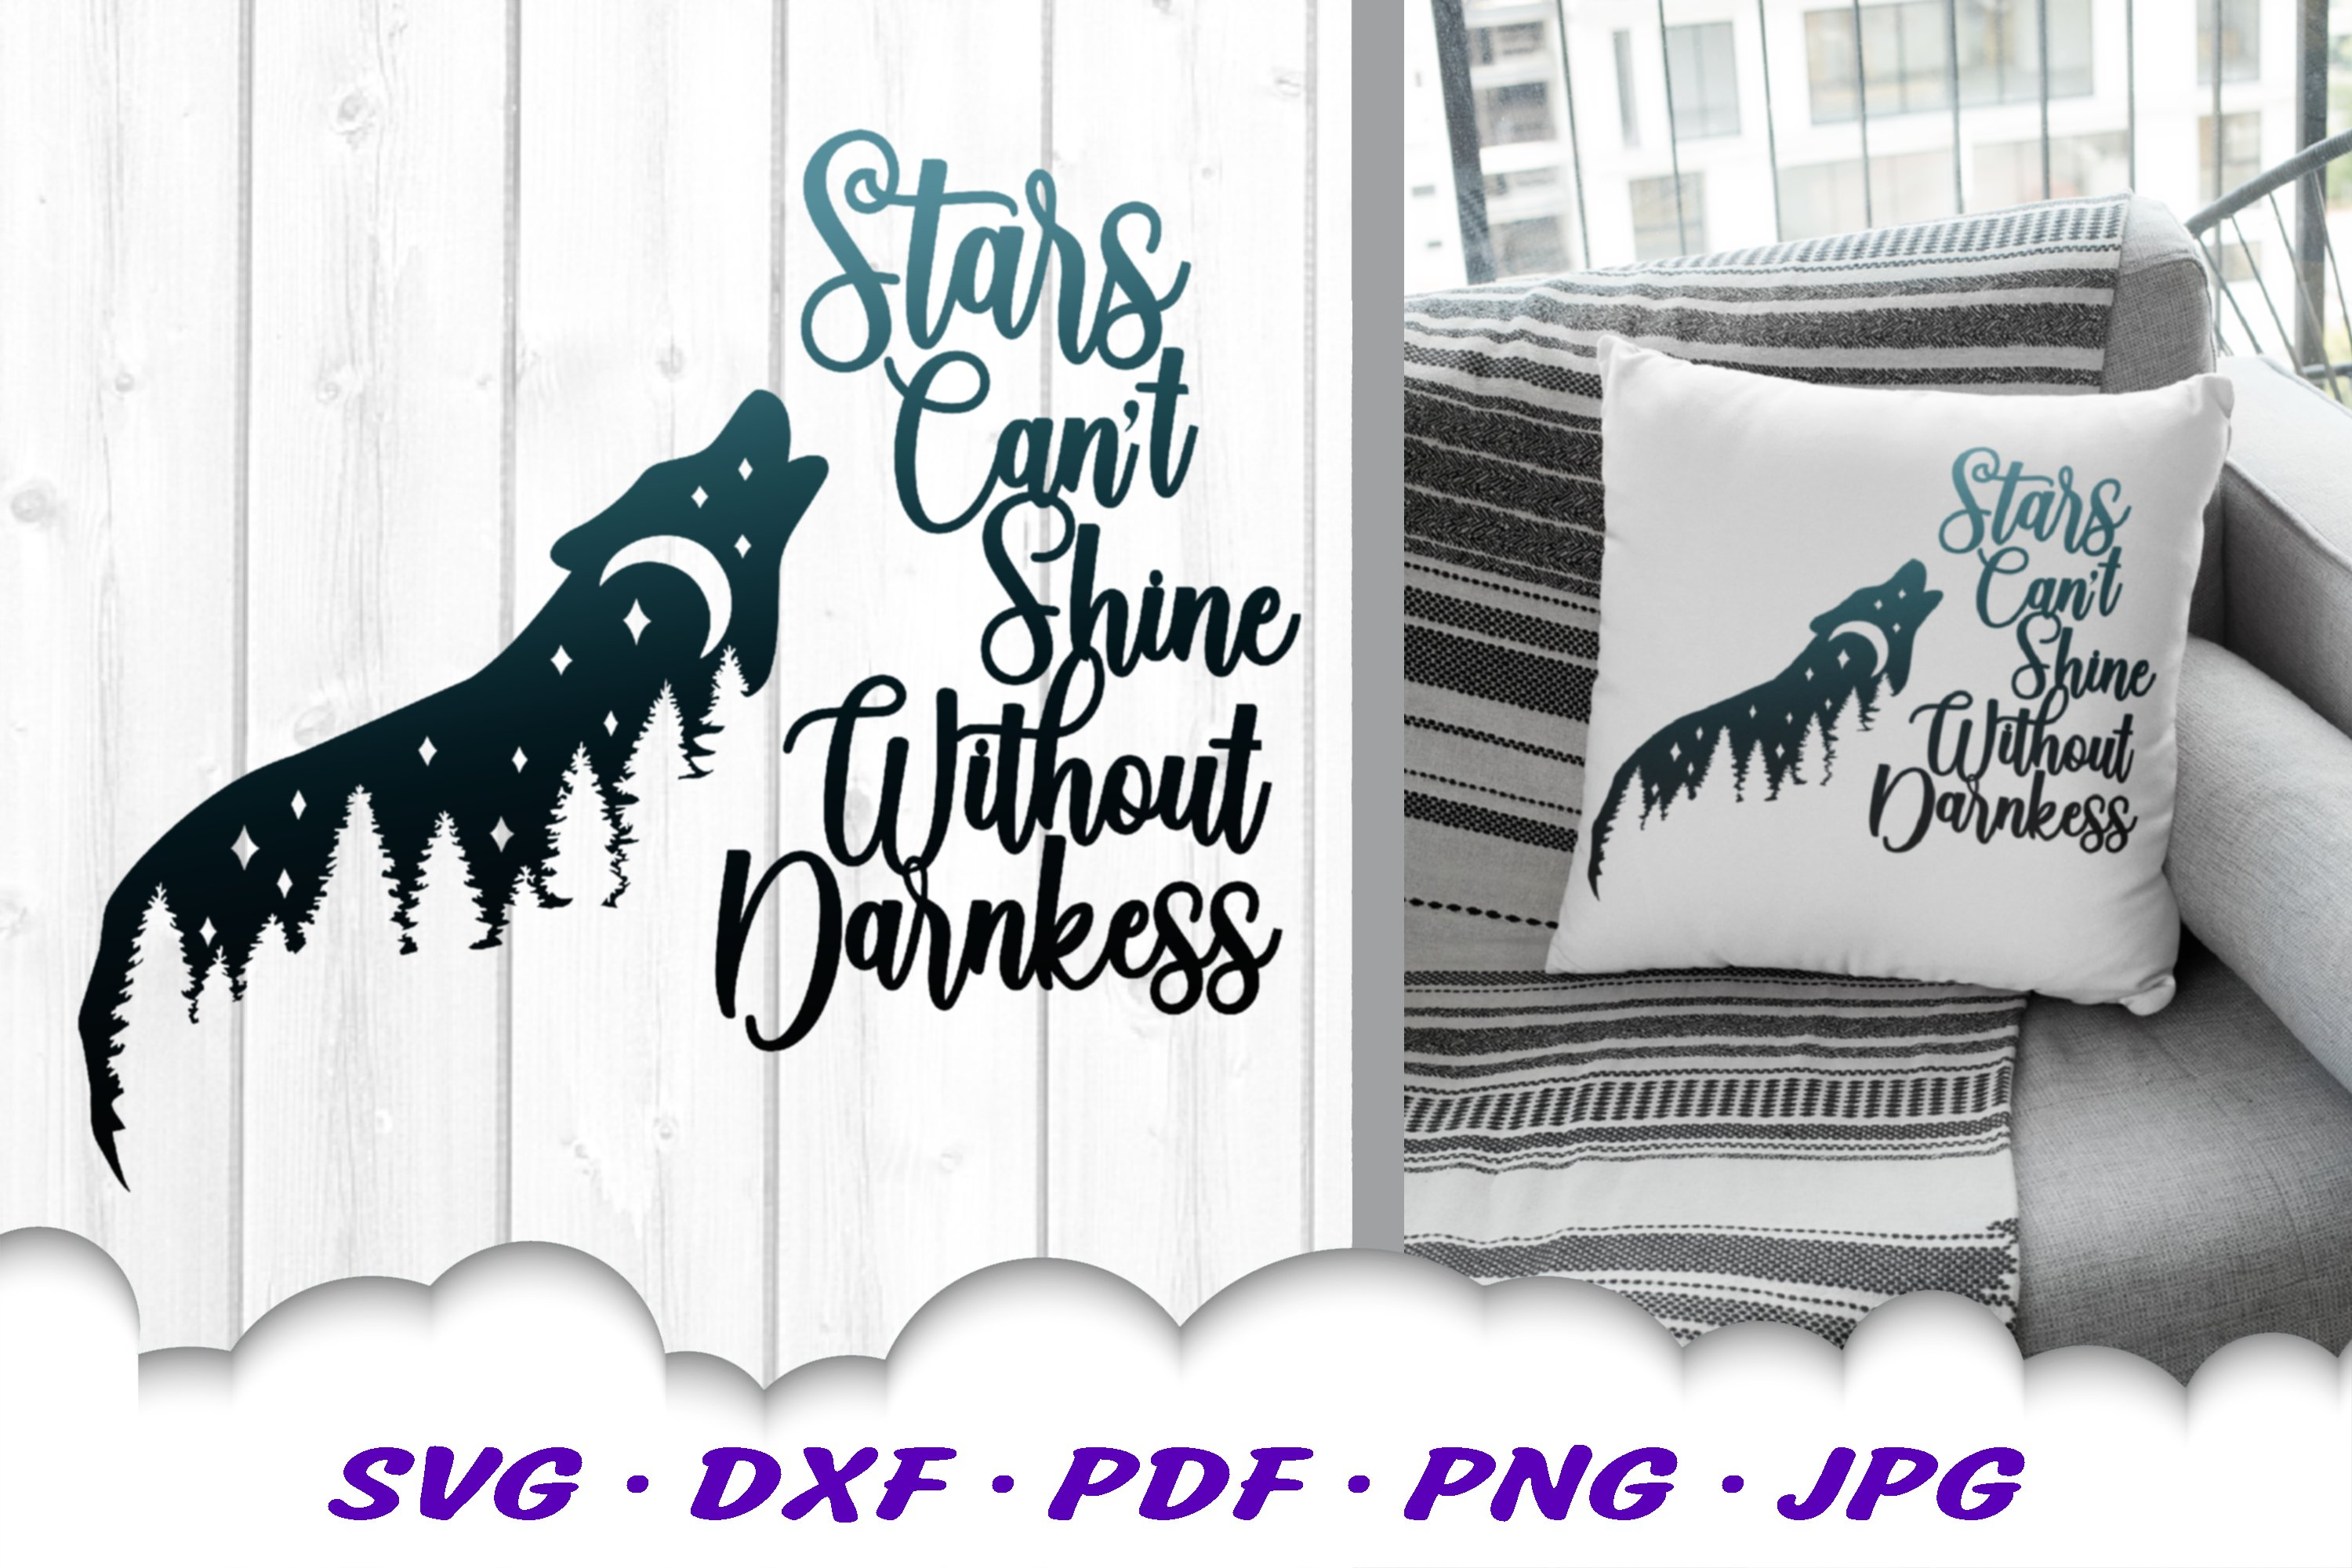 Stars Can T Shine Without Darkness Wolf Svg Dxf Cut Files 470738 Svgs Design Bundles